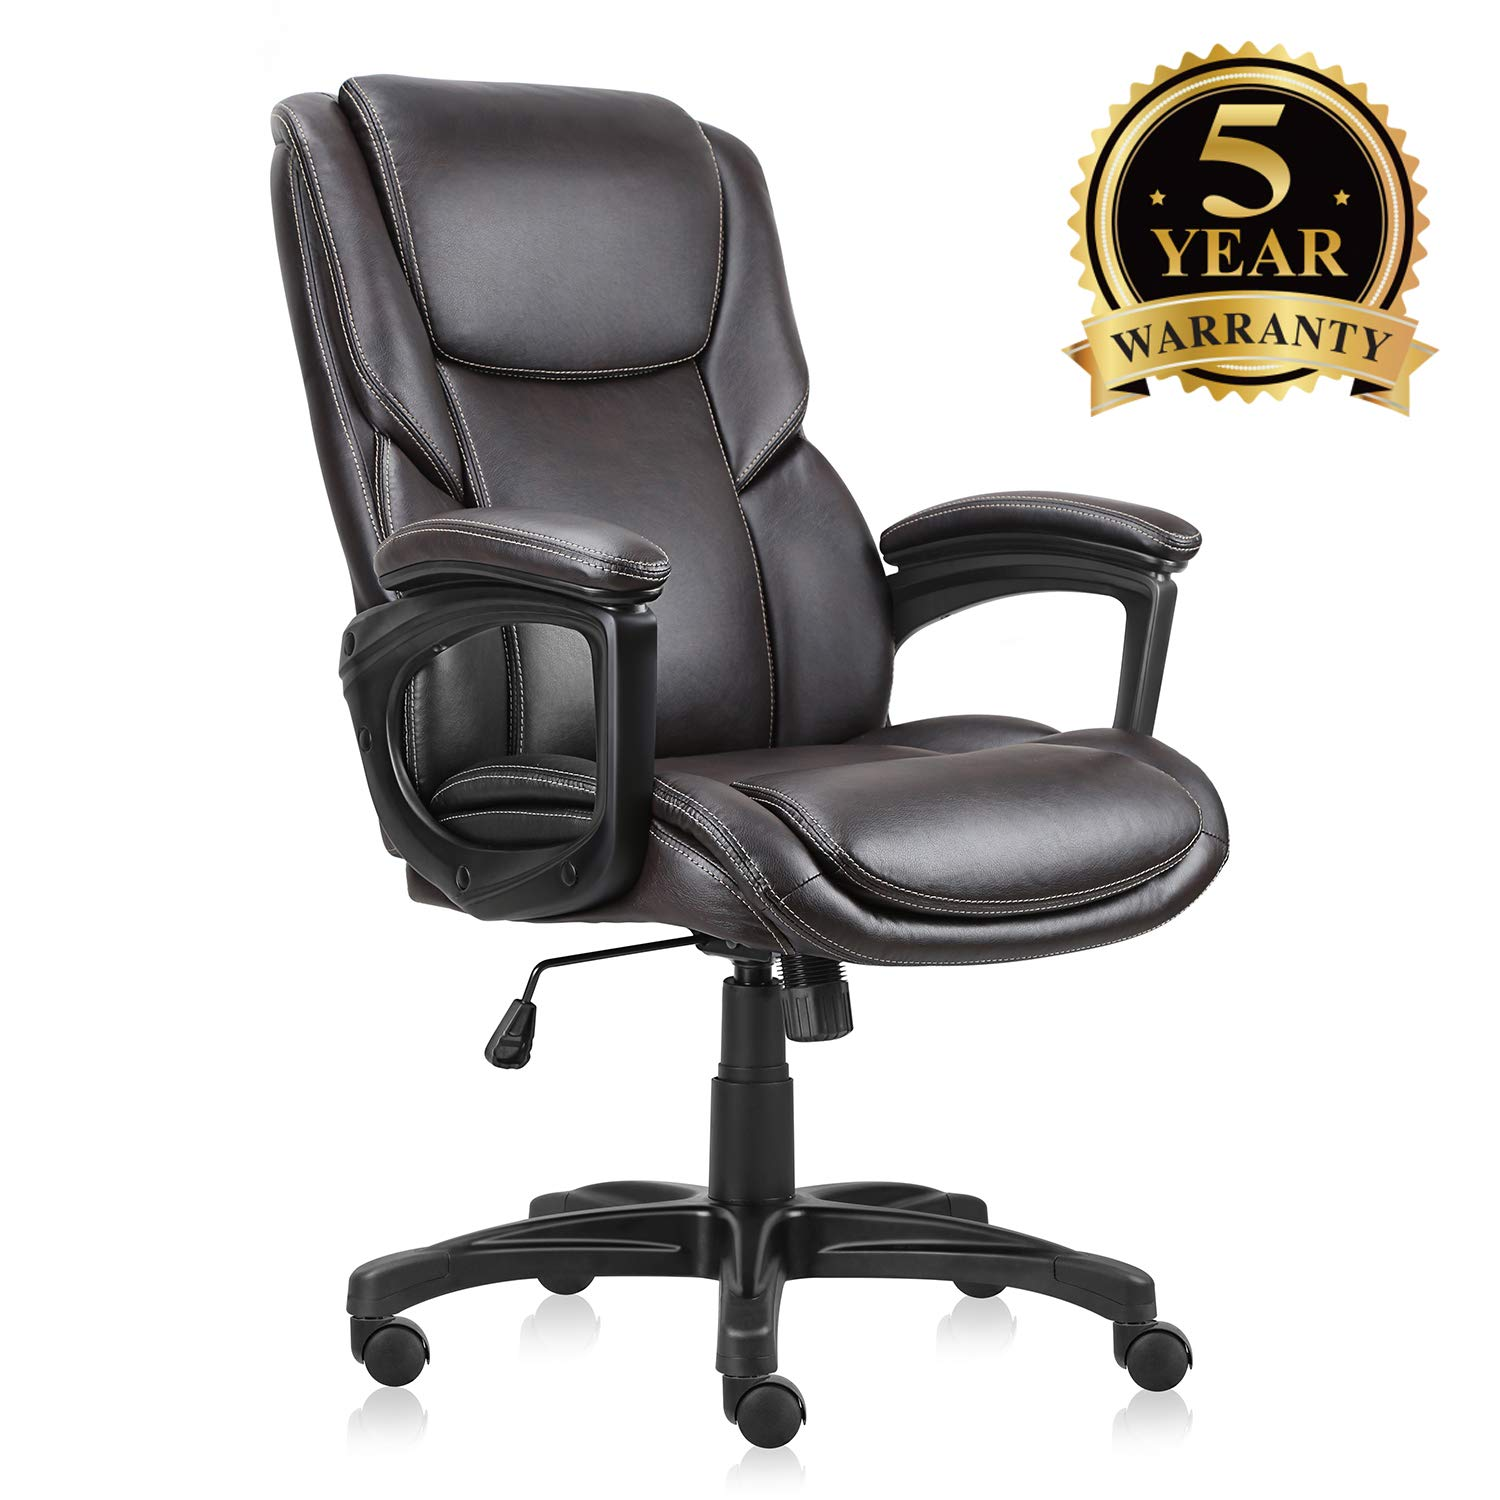 Executive Office Chair with Brown Leather, Swivel Desk Chair for Home and Office, Ergonomic Computer Chair with Adjustable seat